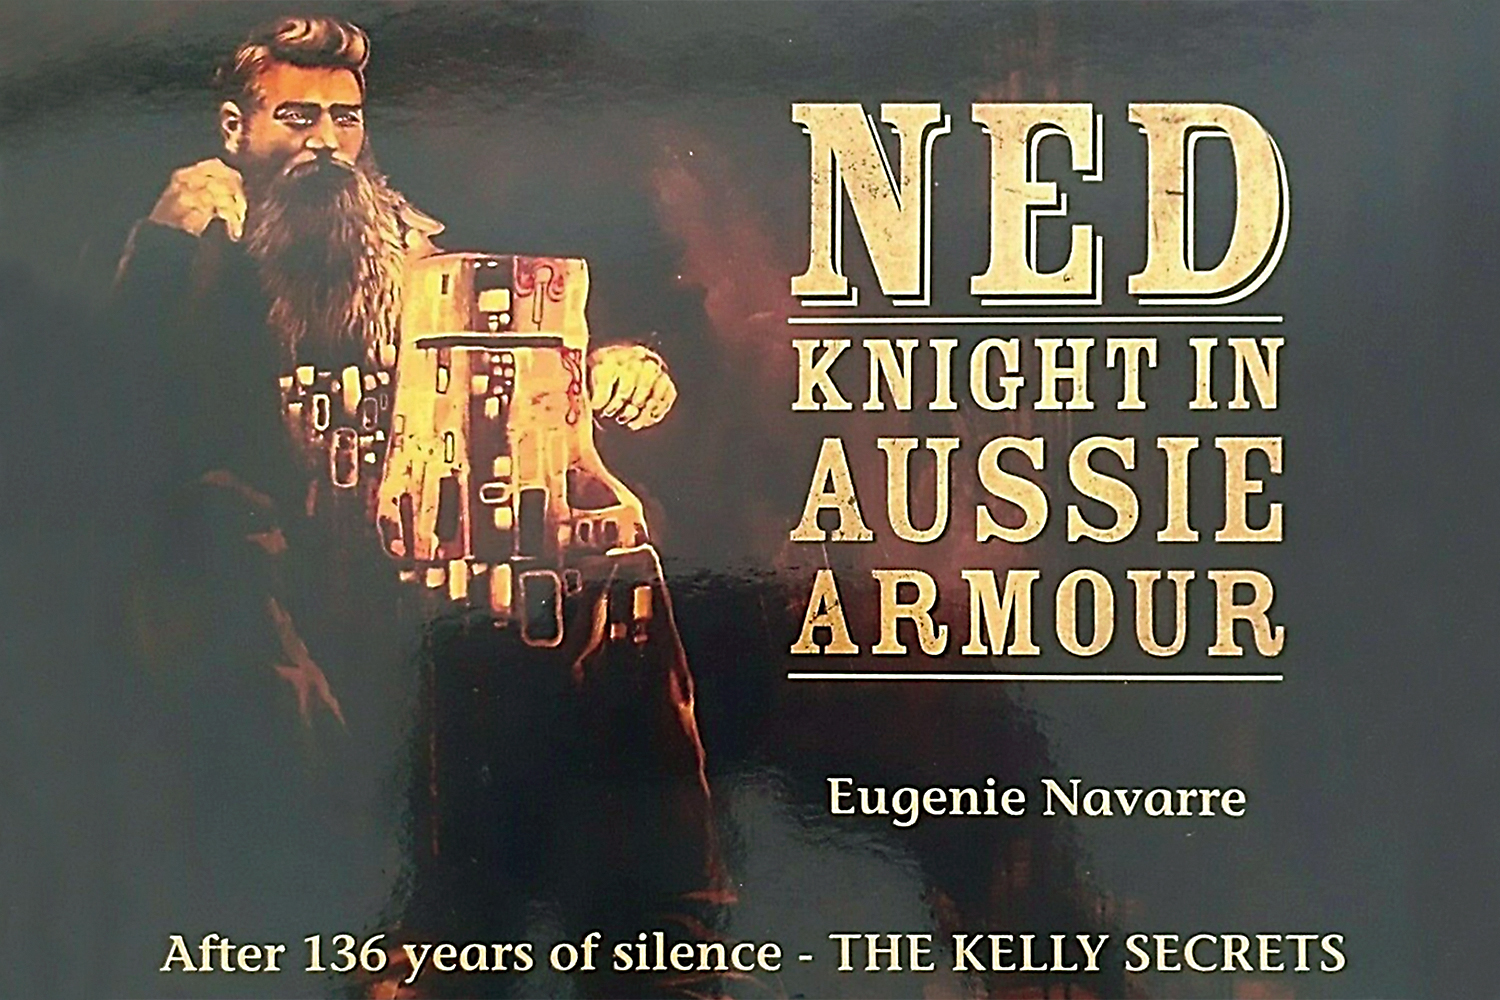 Ned Kelly Knight In Aussie Armour by Eugenie Navarre